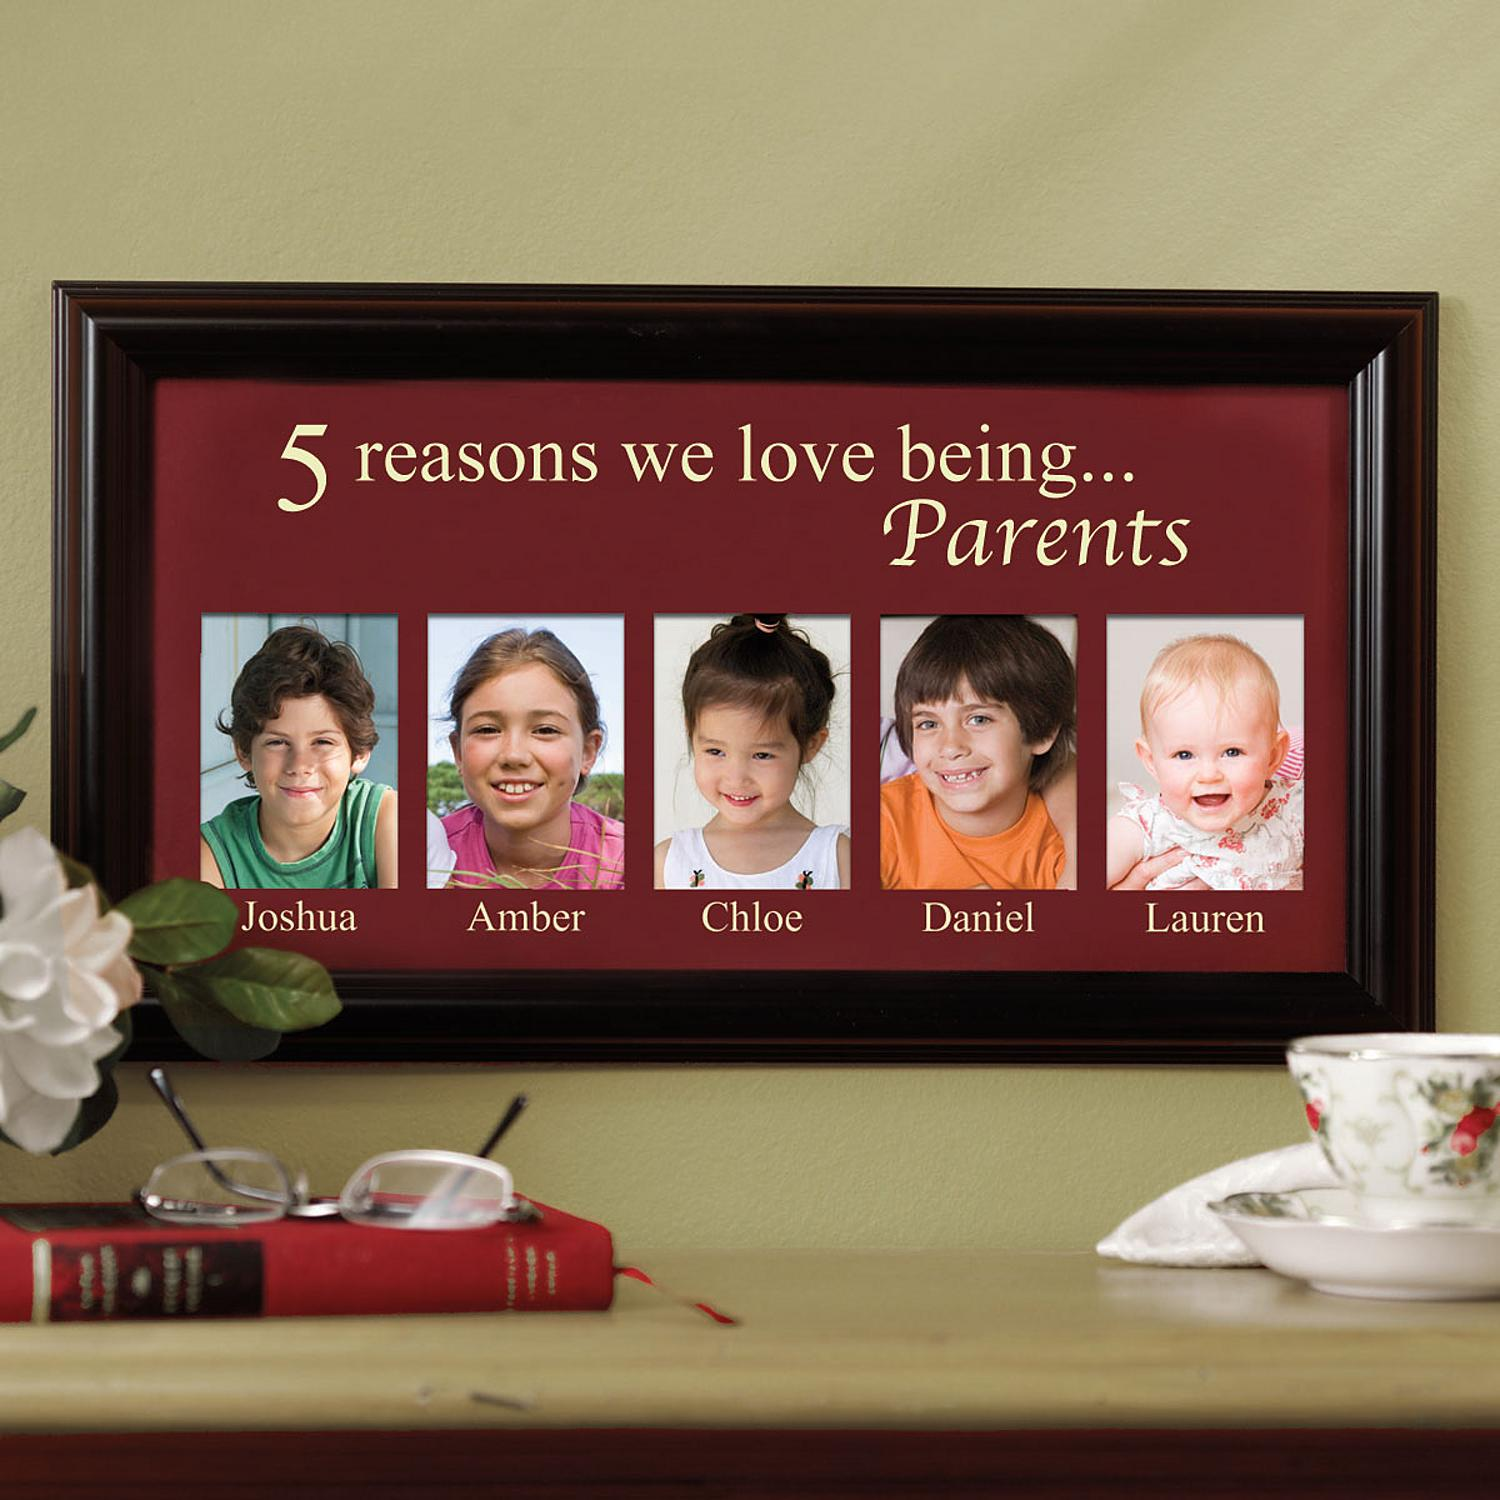 6acc3d0a5a Personalized Reasons We Love Frame - 5 Pictures - Personal Creations Gifts